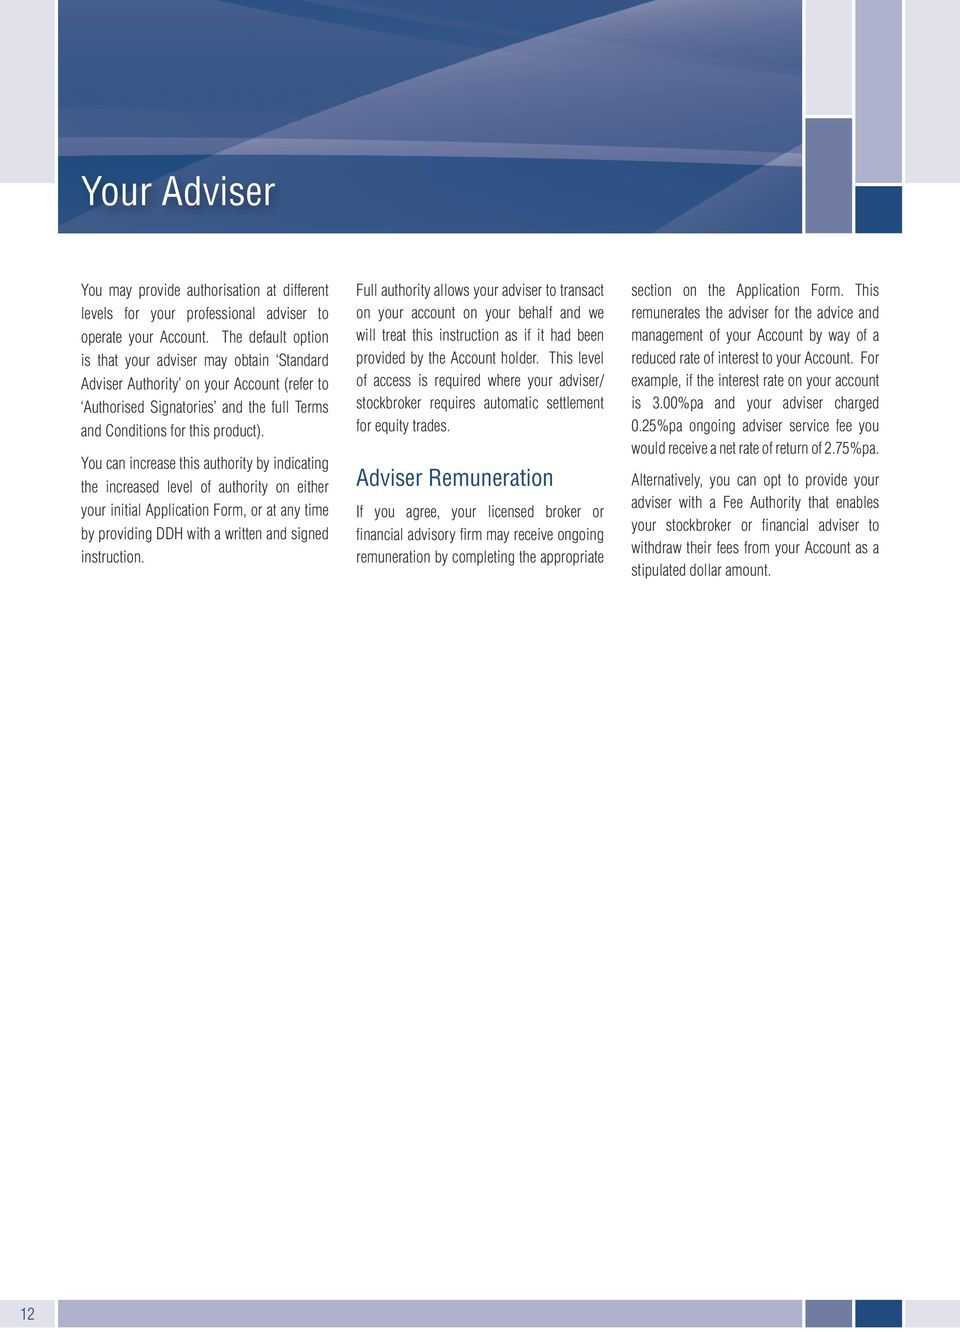 You can increase this authority by indicating the increased level of authority on either your initial Application Form, or at any time by providing DDH with a written and signed instruction.